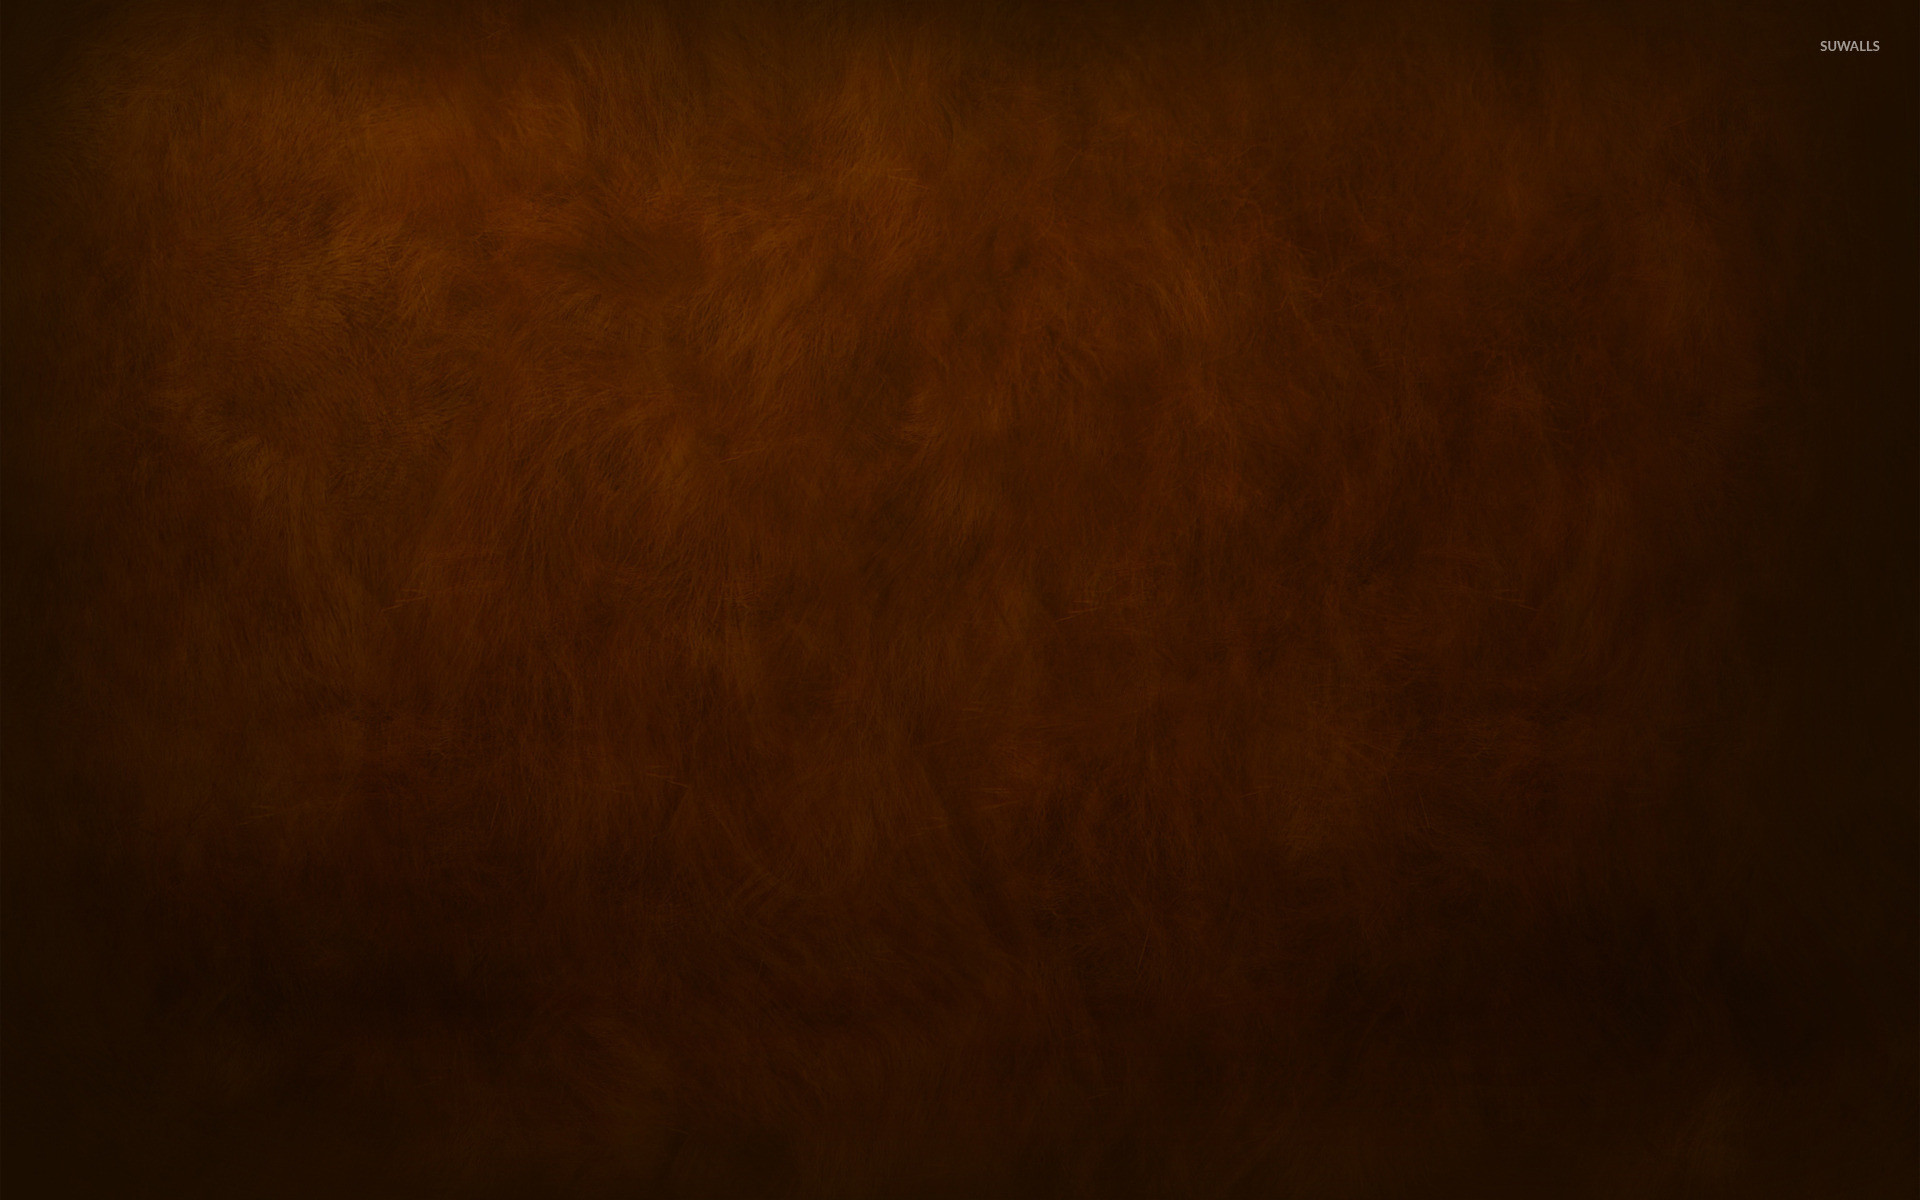 Brown Background Wallpaper 68 images 1920x1200